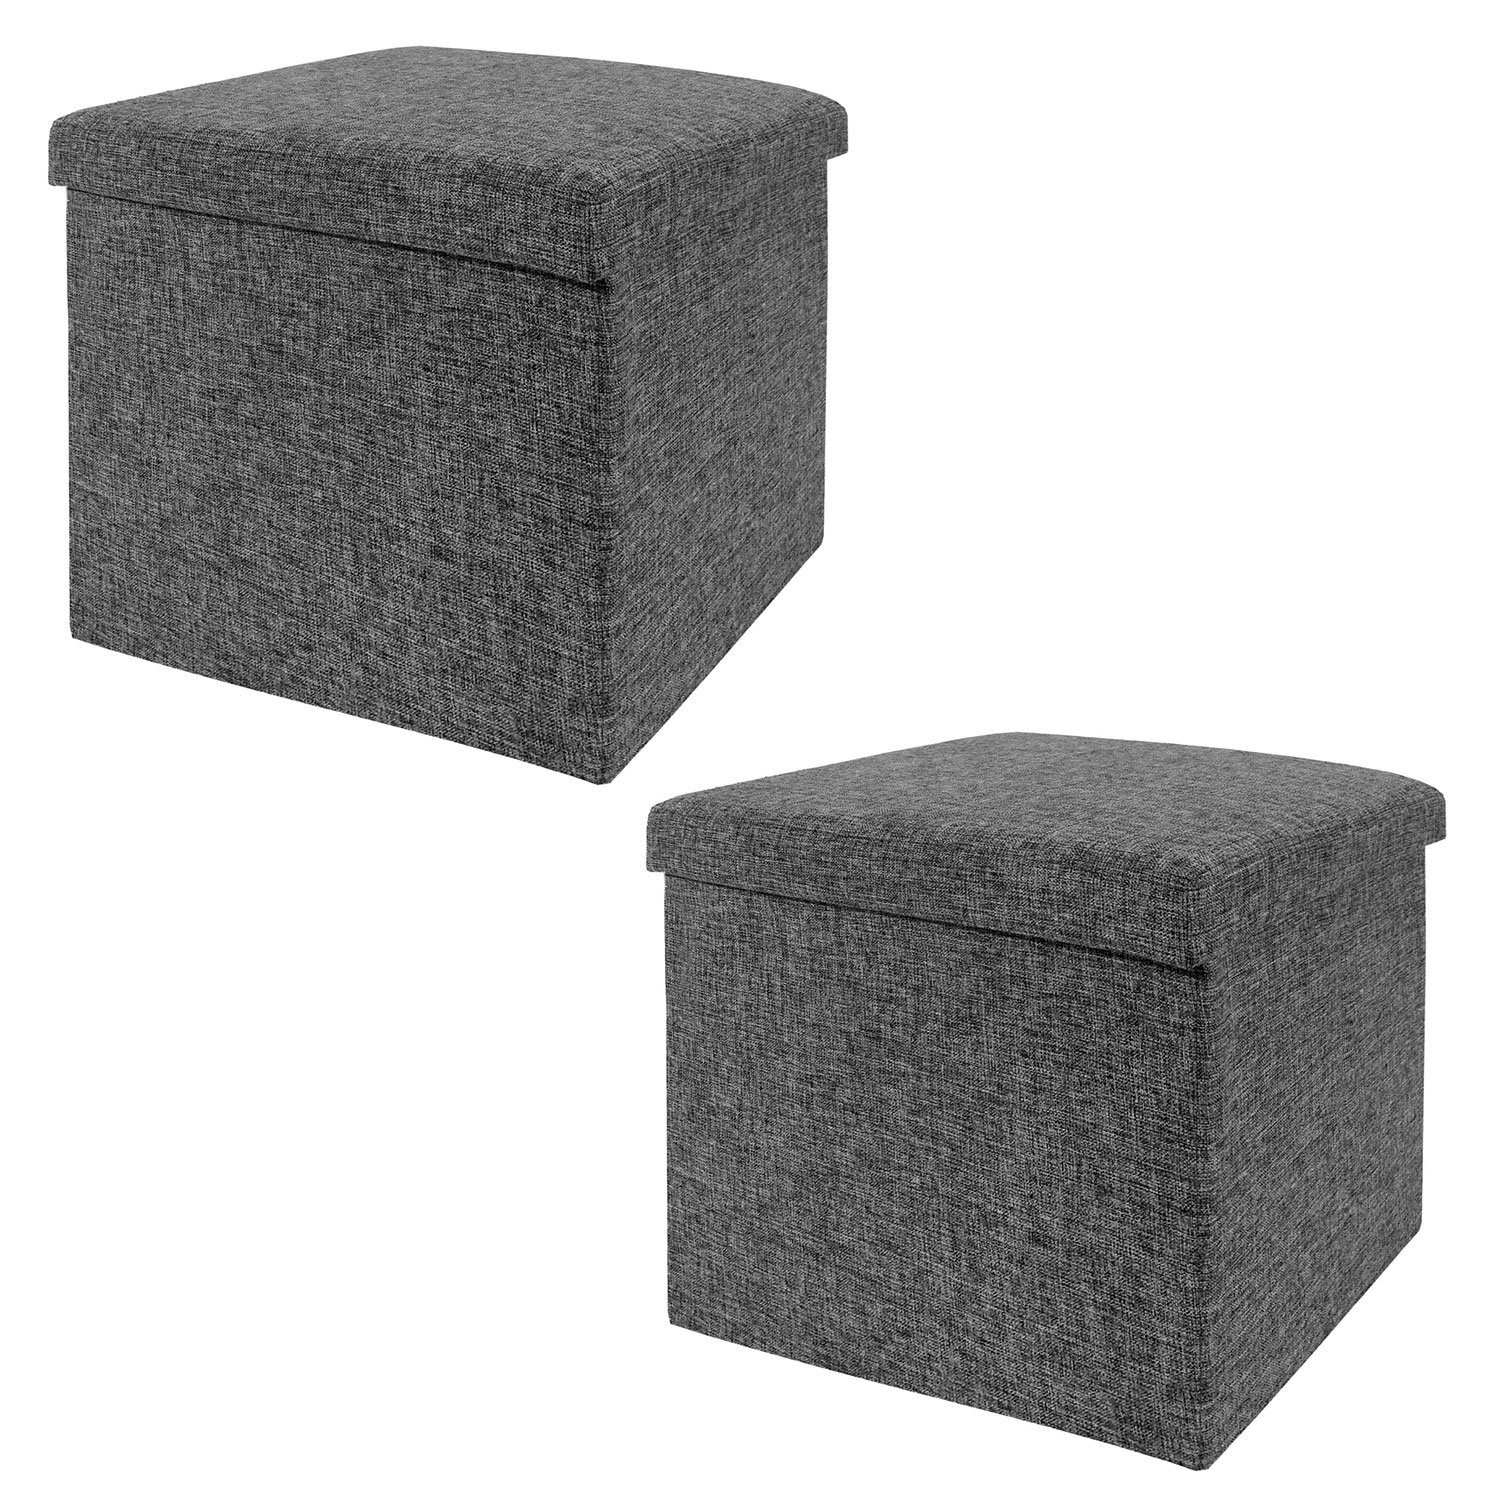 Bon Amazon.com: Seville Classics Foldable Storage Ottoman, Charcoal Gray (2  Pack): Home U0026 Kitchen